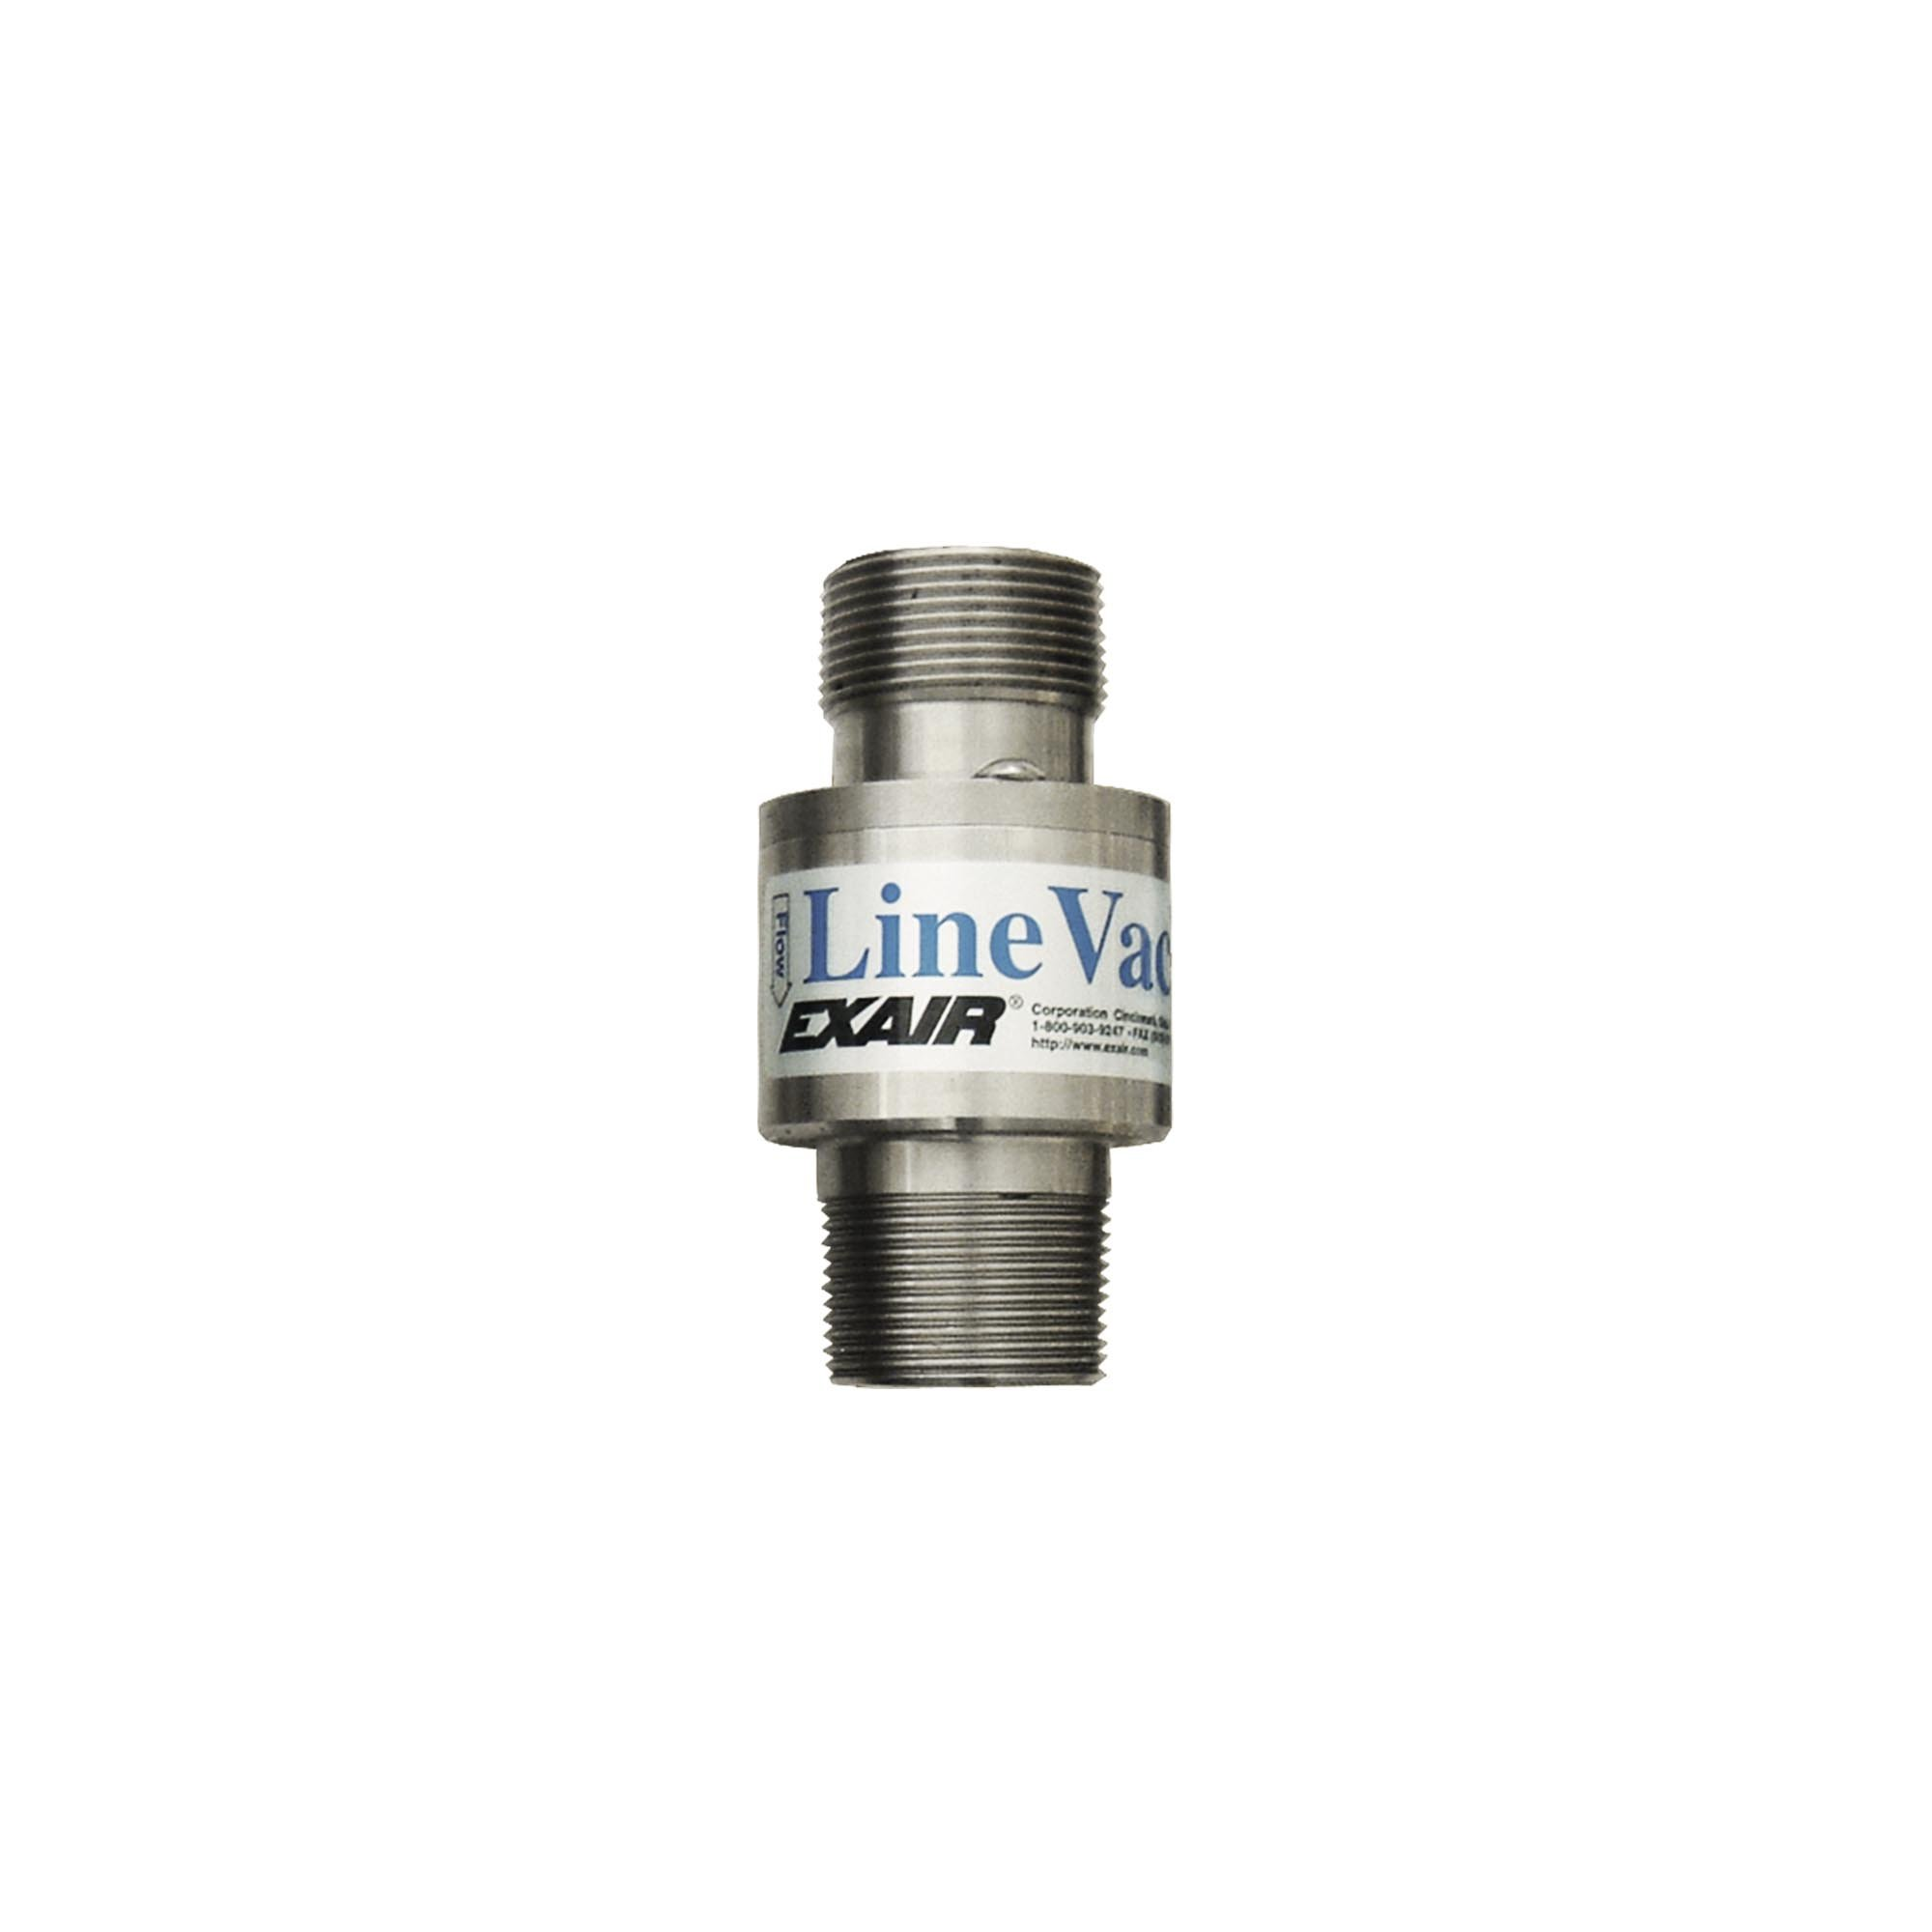 Model 141125 1-1/4 NPT St. St. Threaded Line Vac